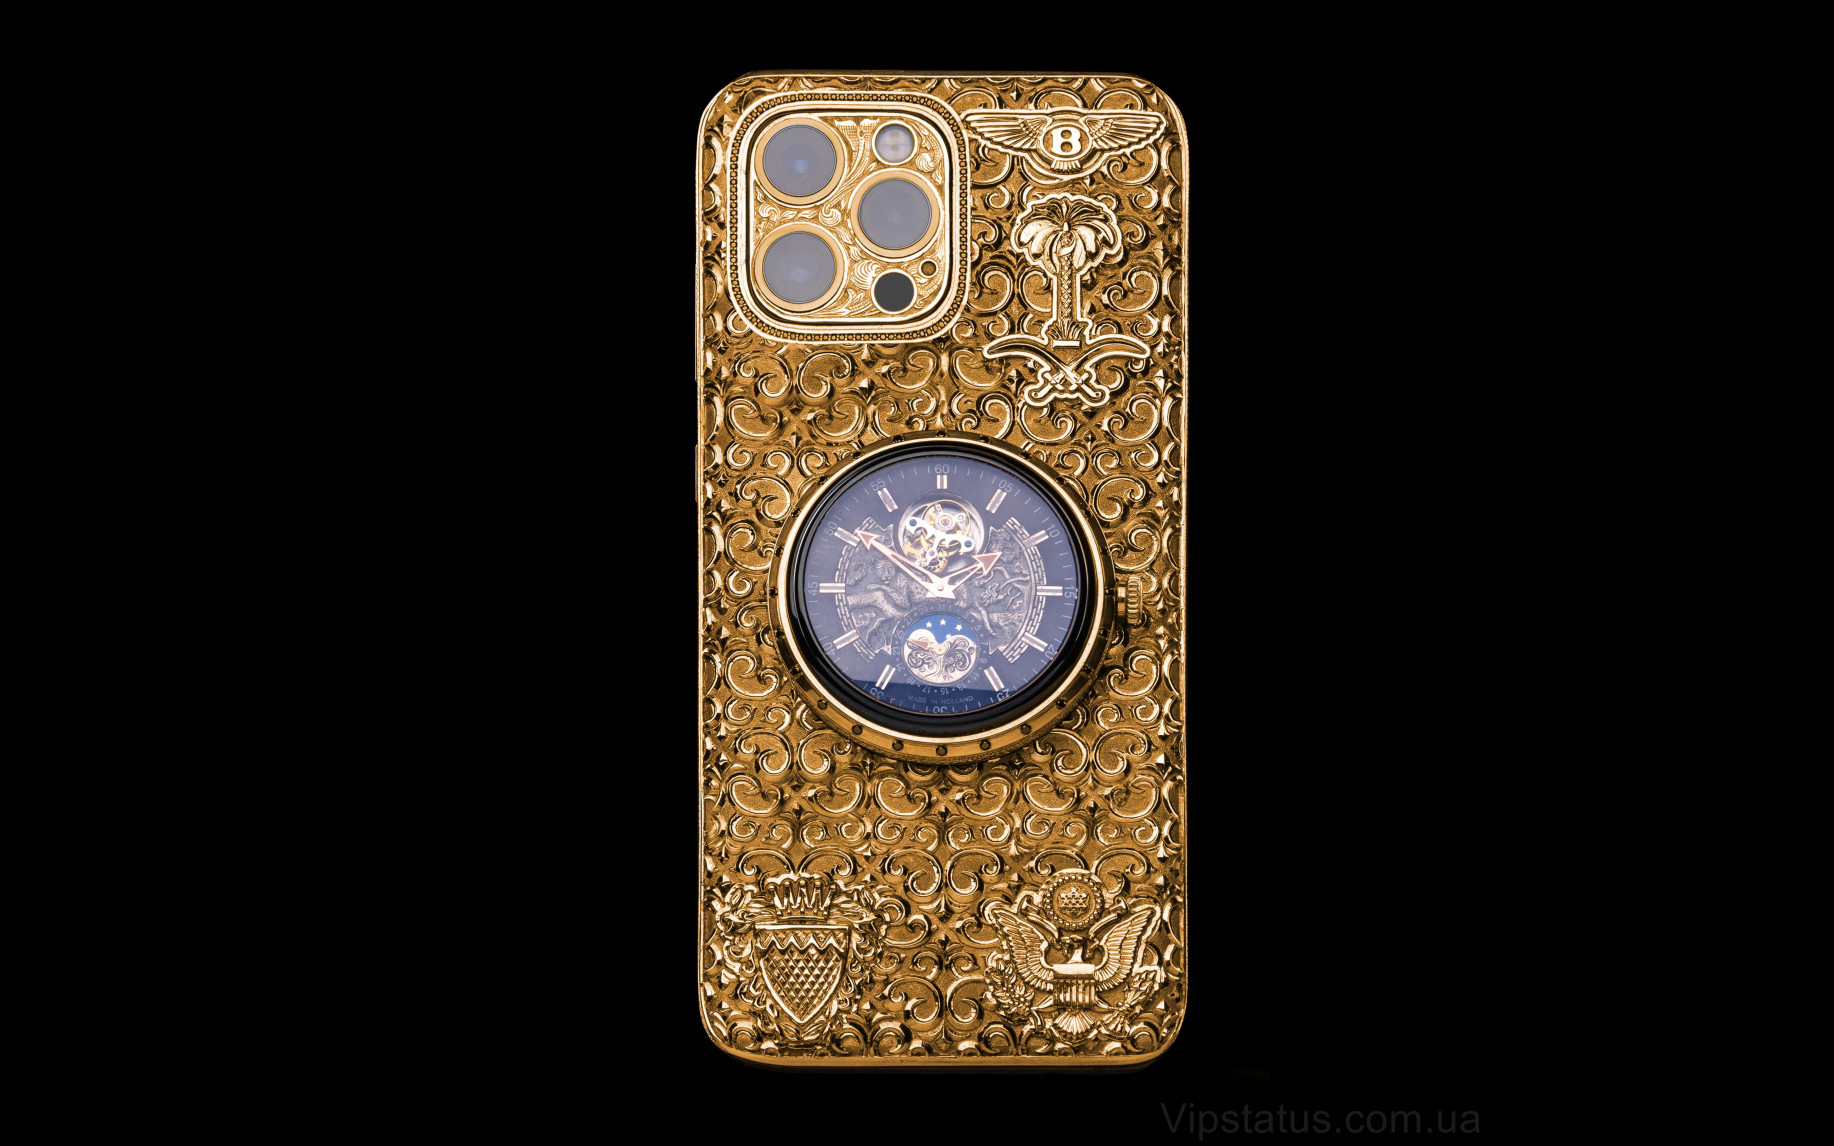 Elite Golden Ring of Time IPHONE 12 PRO MAX 512 GB Golden Ring of Time IPHONE 12 PRO MAX 512 GB image 2